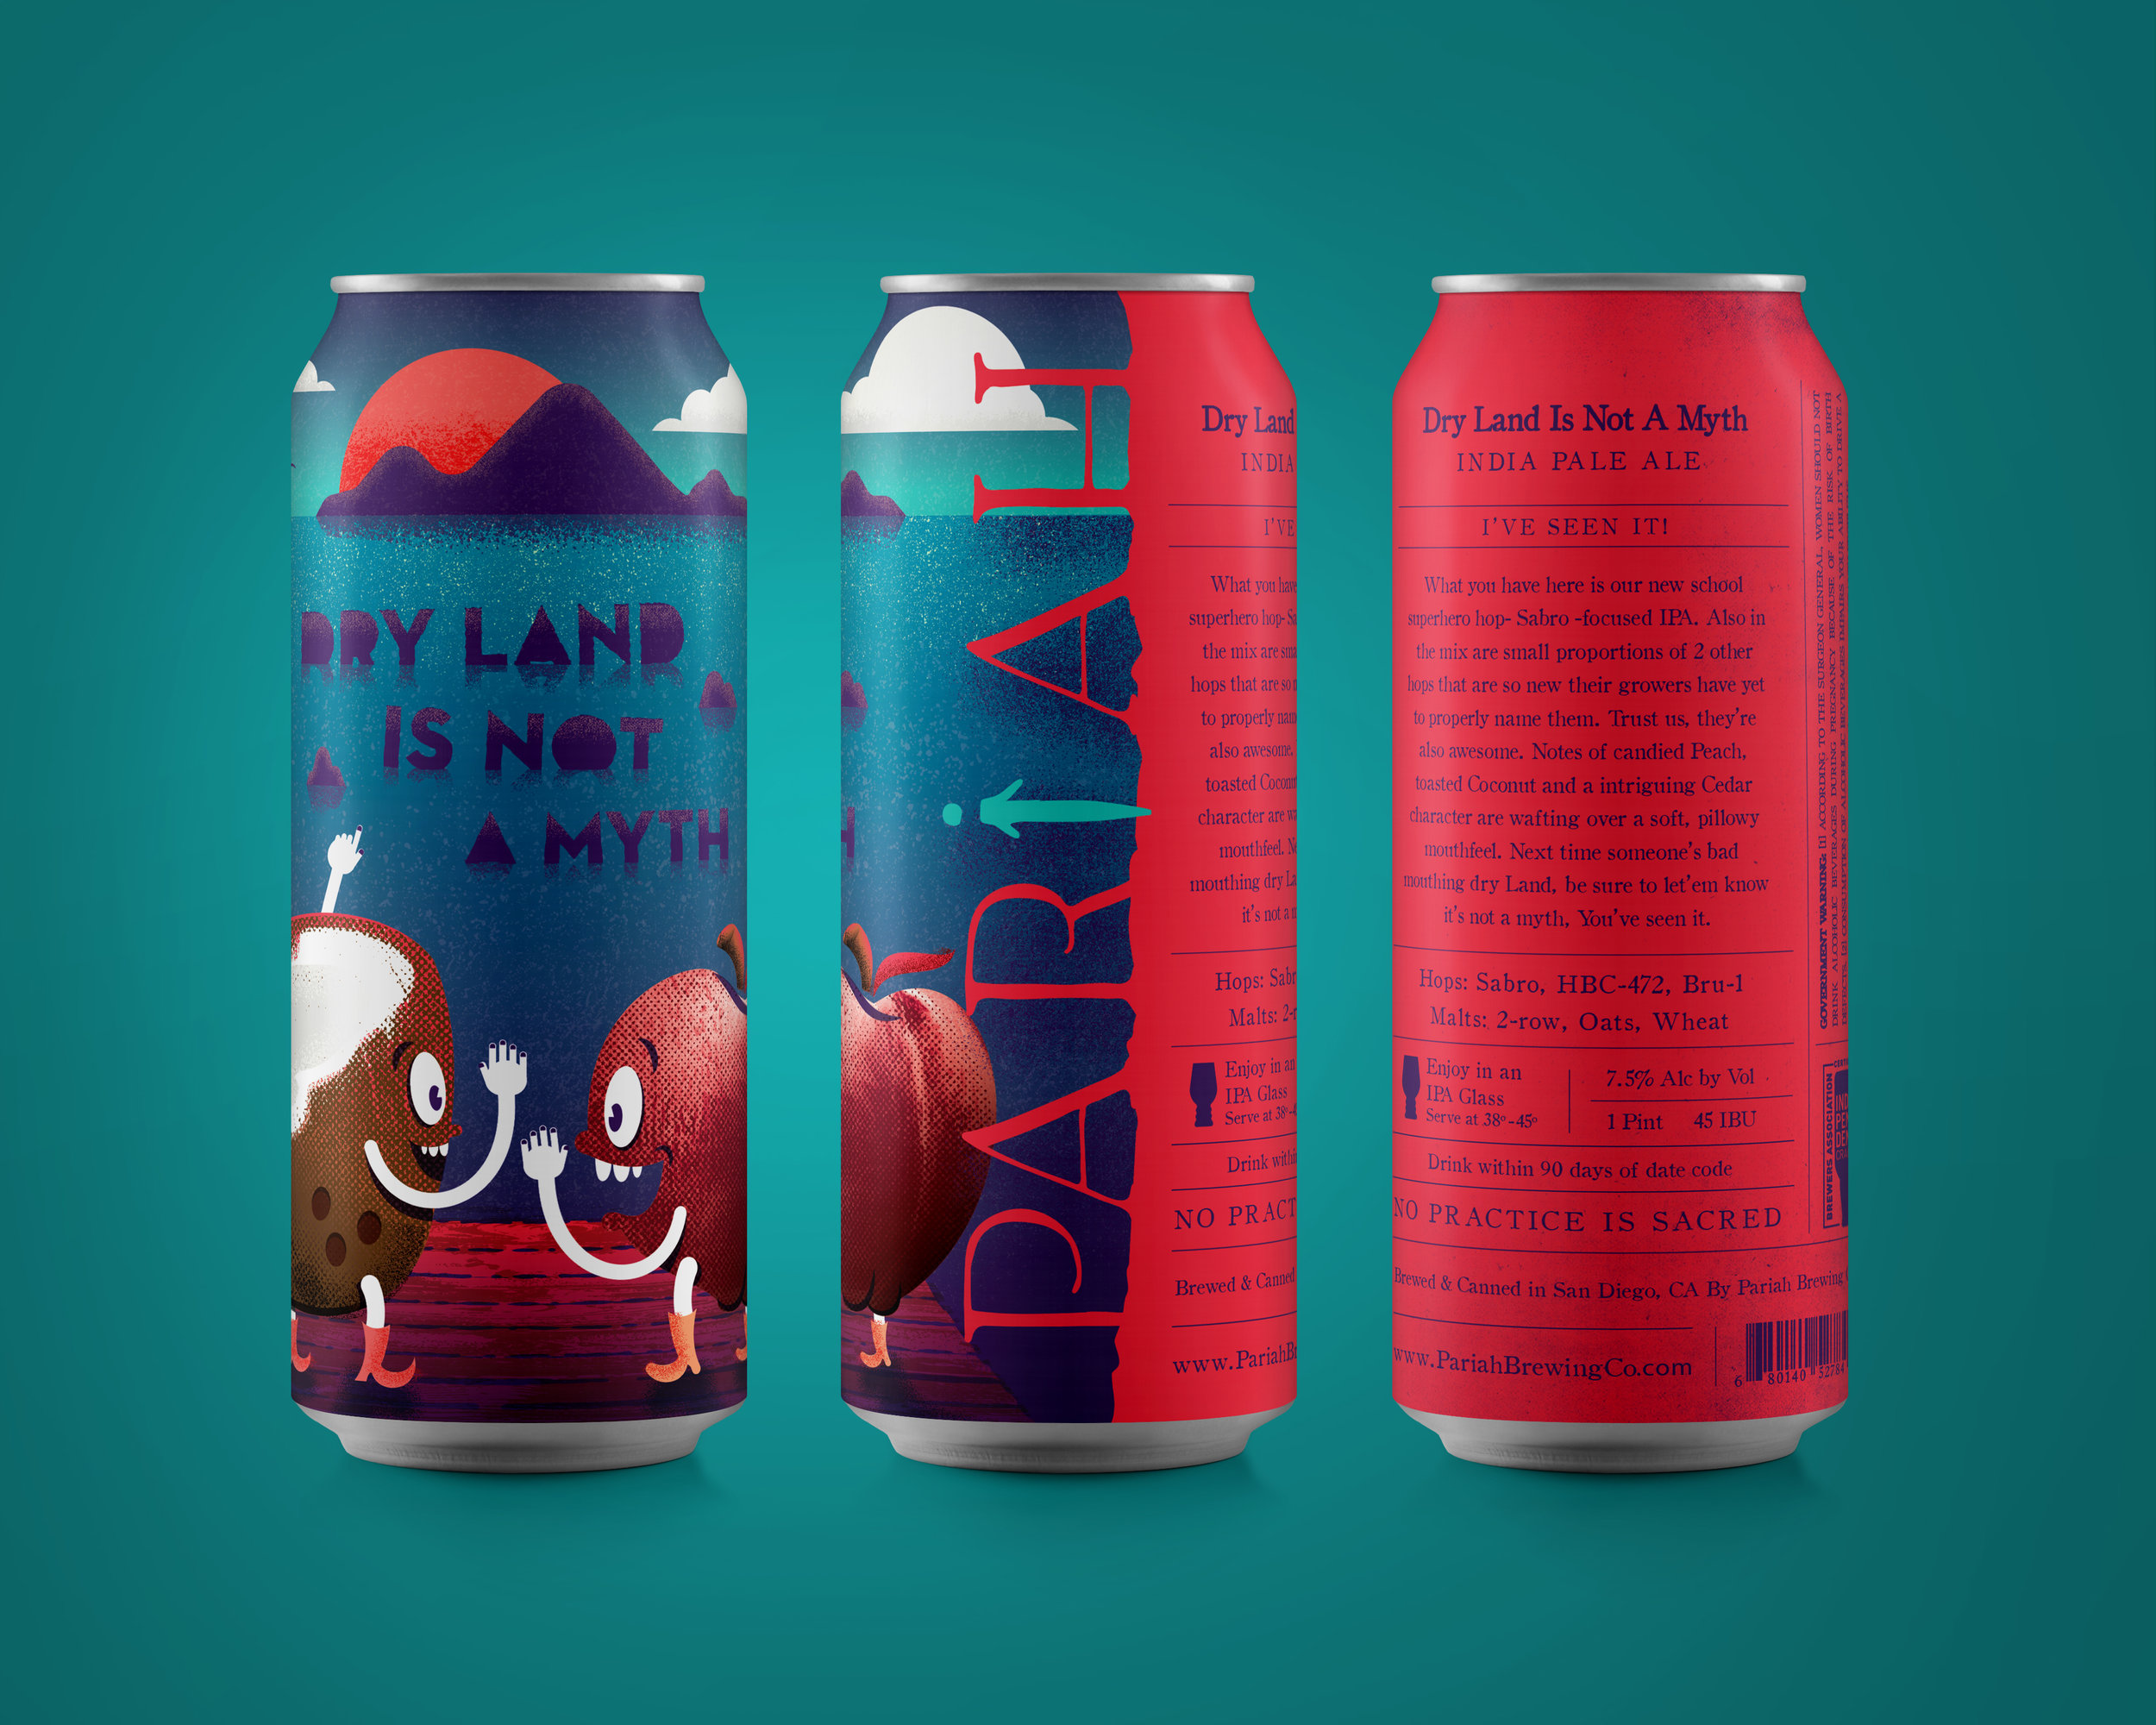 DRY LAND IS NOT A MYTH IPA - 7.5%; 45 IBU — Sabro focused American IPA. Small quantities of HBC-472 & Bru-1 hops. Notes of candied peach, toasted coconut, cedar.